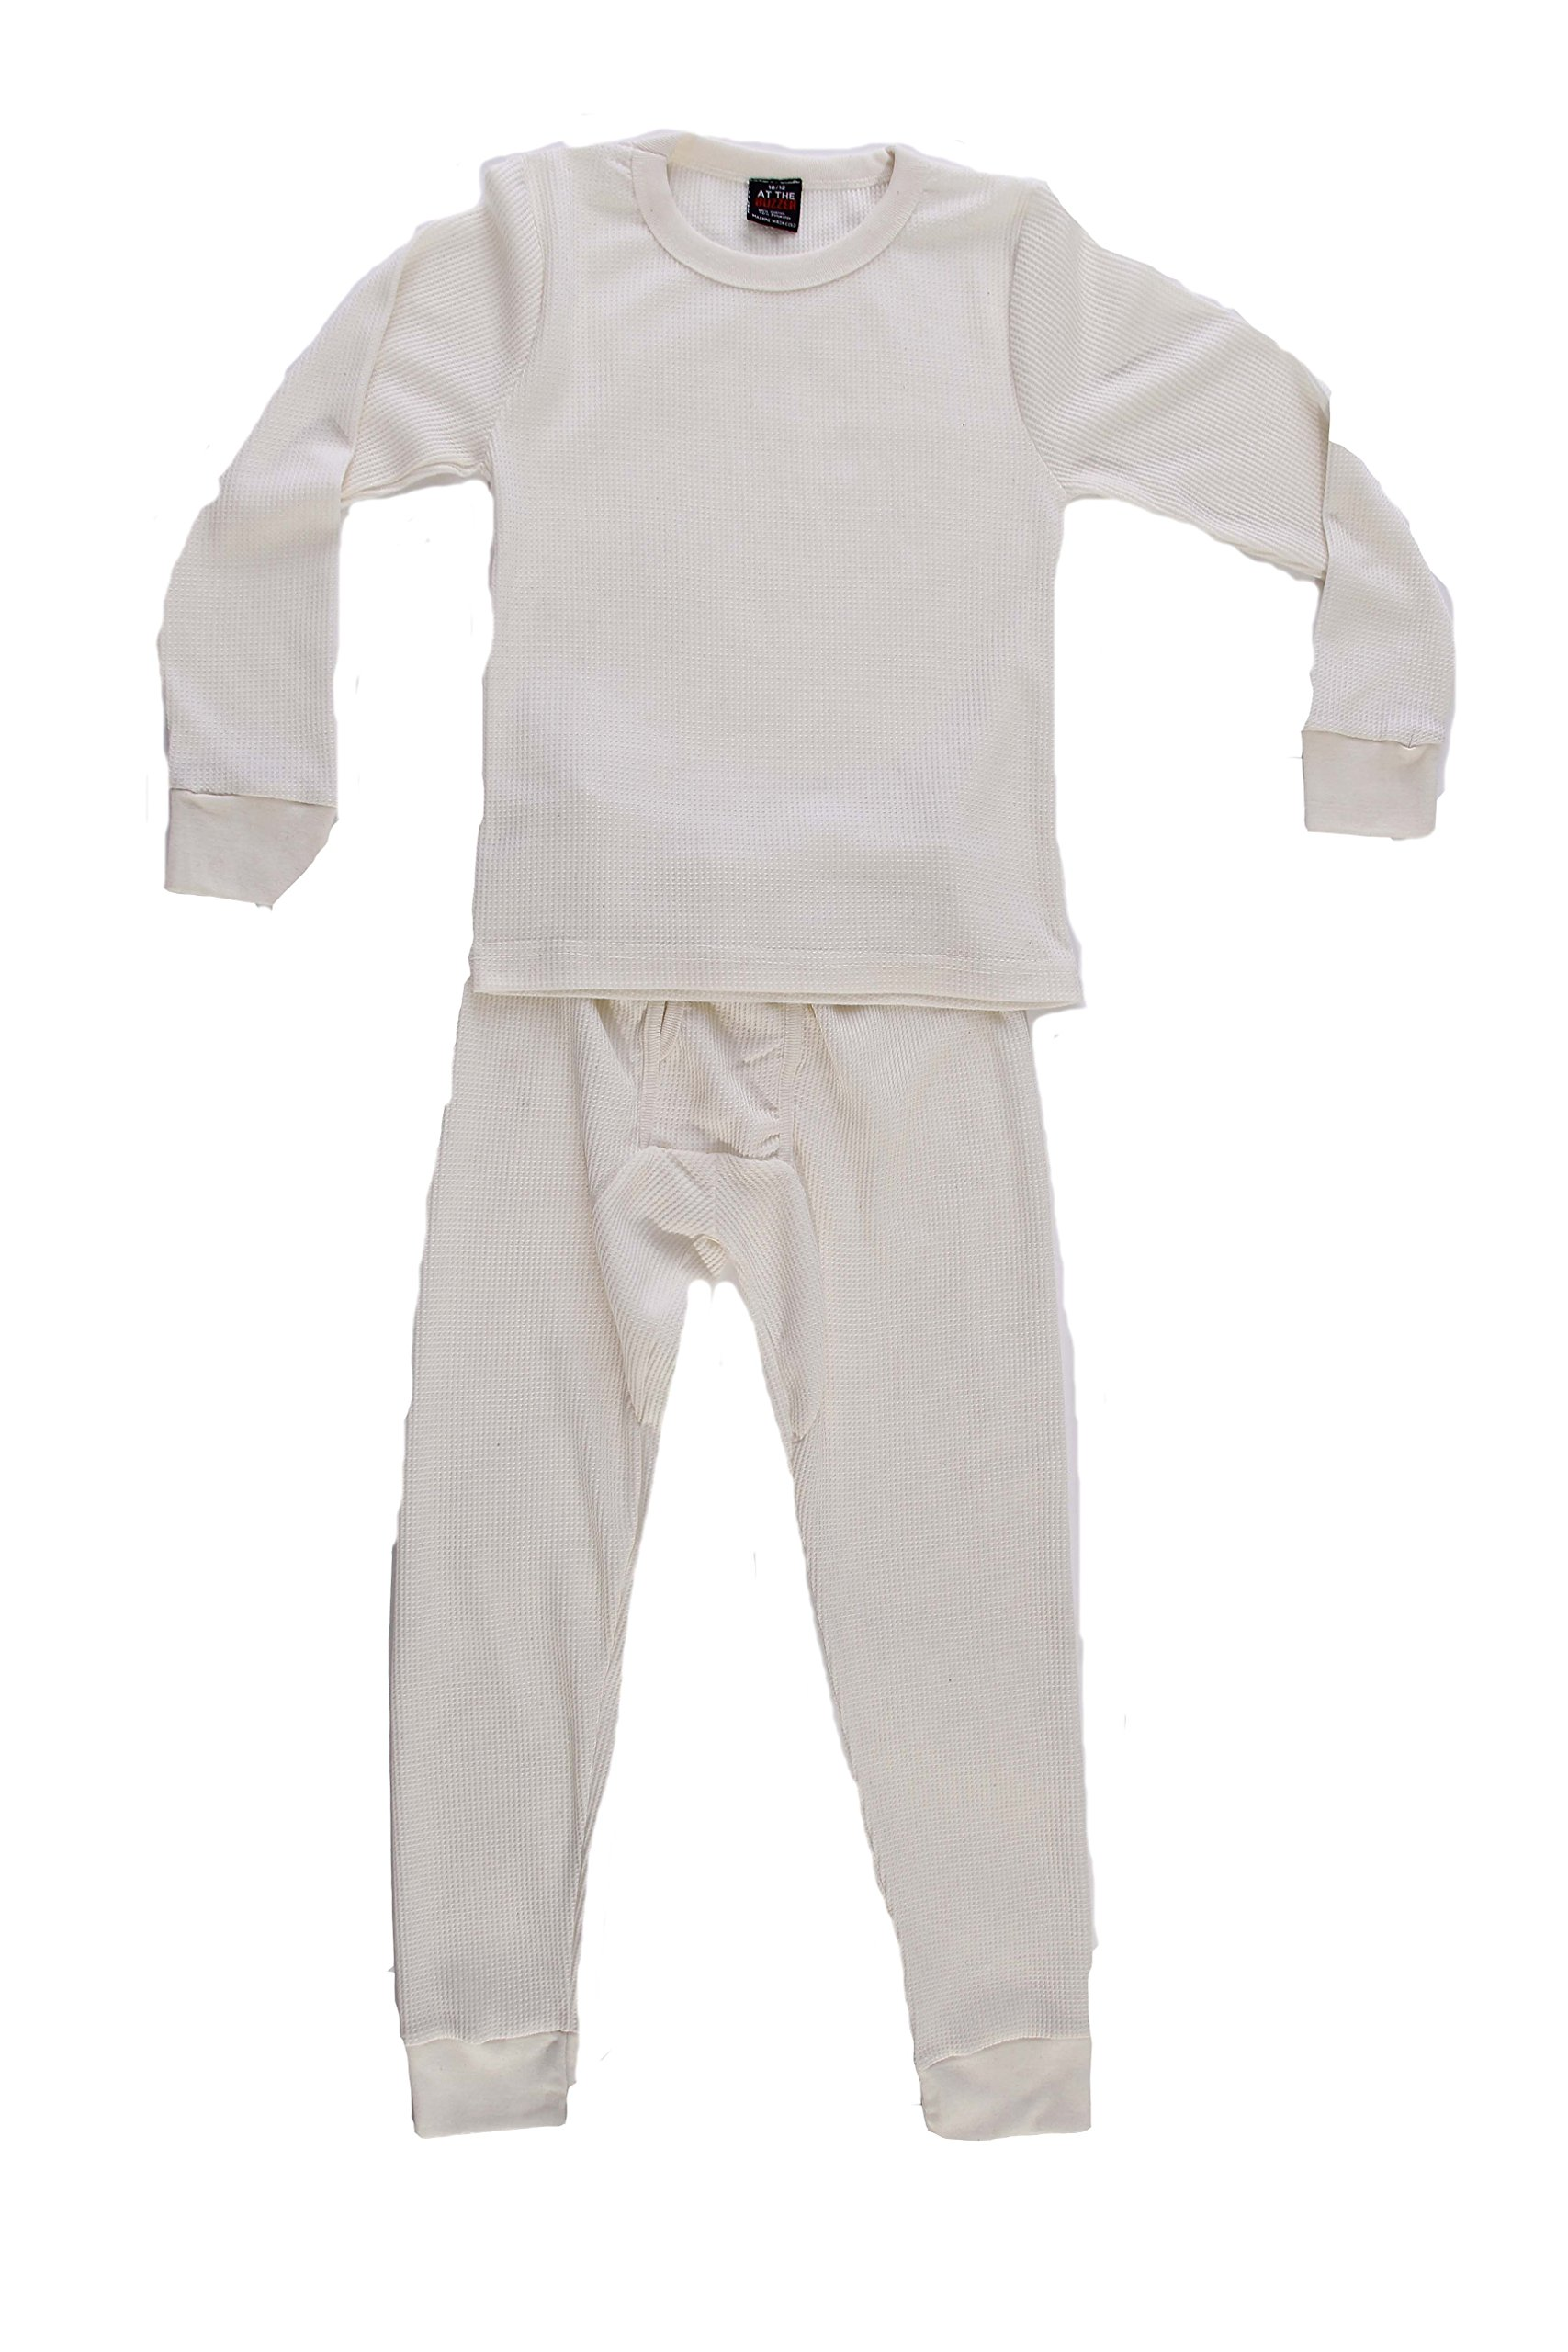 At The Buzzer Thermal Underwear Set for Boys 95362-Ecru-18/20 by At The Buzzer